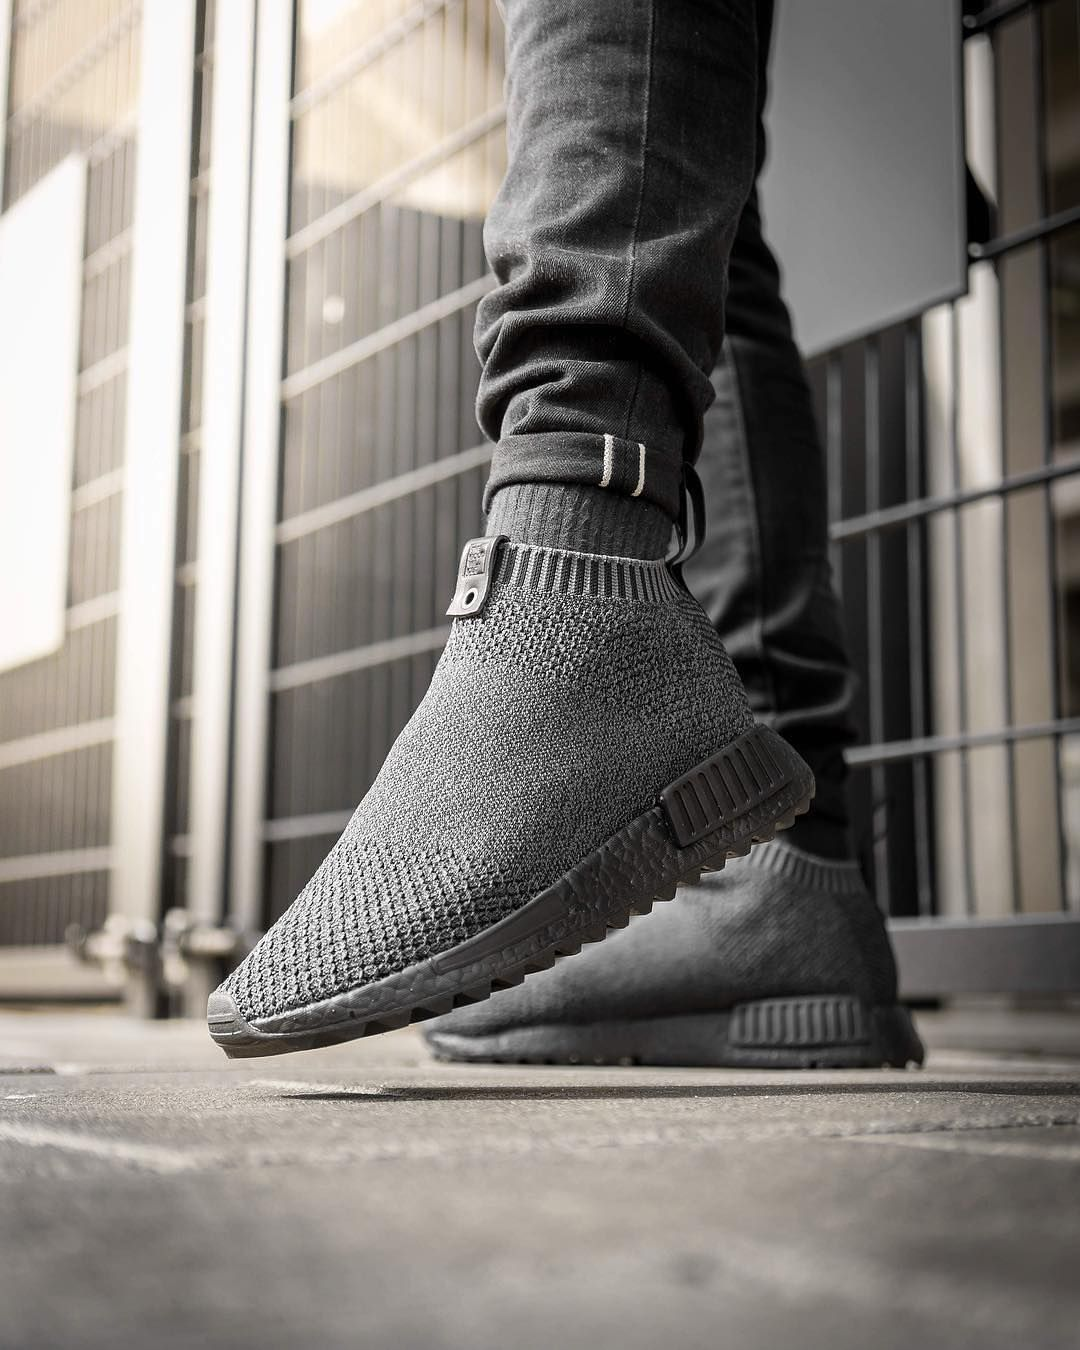 official photos f8dba a74f5 1,939 Me gusta, 40 comentarios - HYPEBEAST (HYPEBEAST) en Instagram  Up  close with The Good Will Out x adidas Consortium NMD CS1 on feet, set to  release on ...